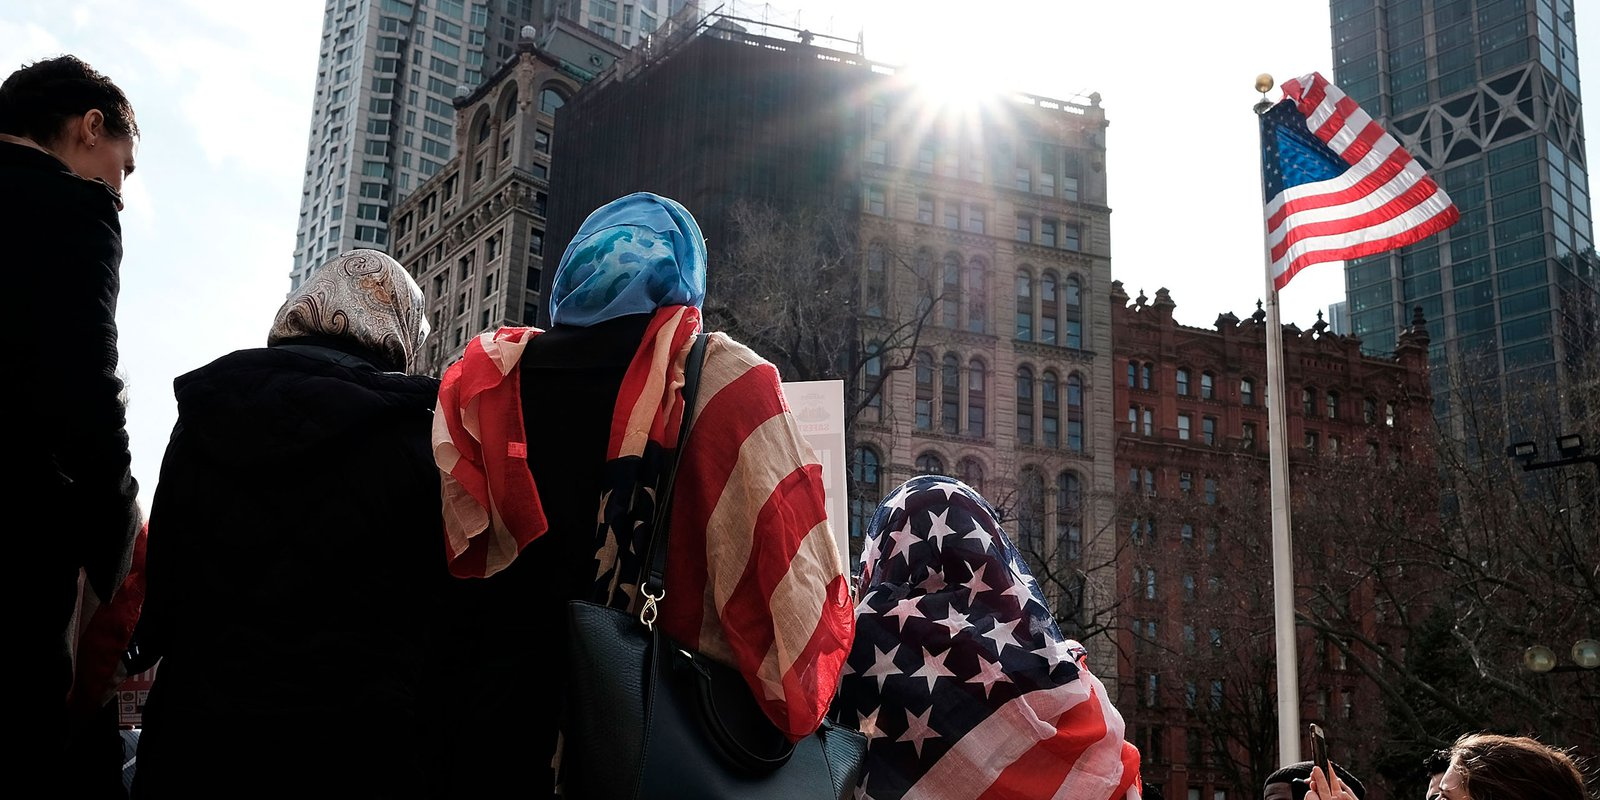 New York, NY - 01 February 2017: Women wear an American Flag head scarf at an event at City Hall for World Hijab Day. Photo by Spencer Platt/Getty Images.